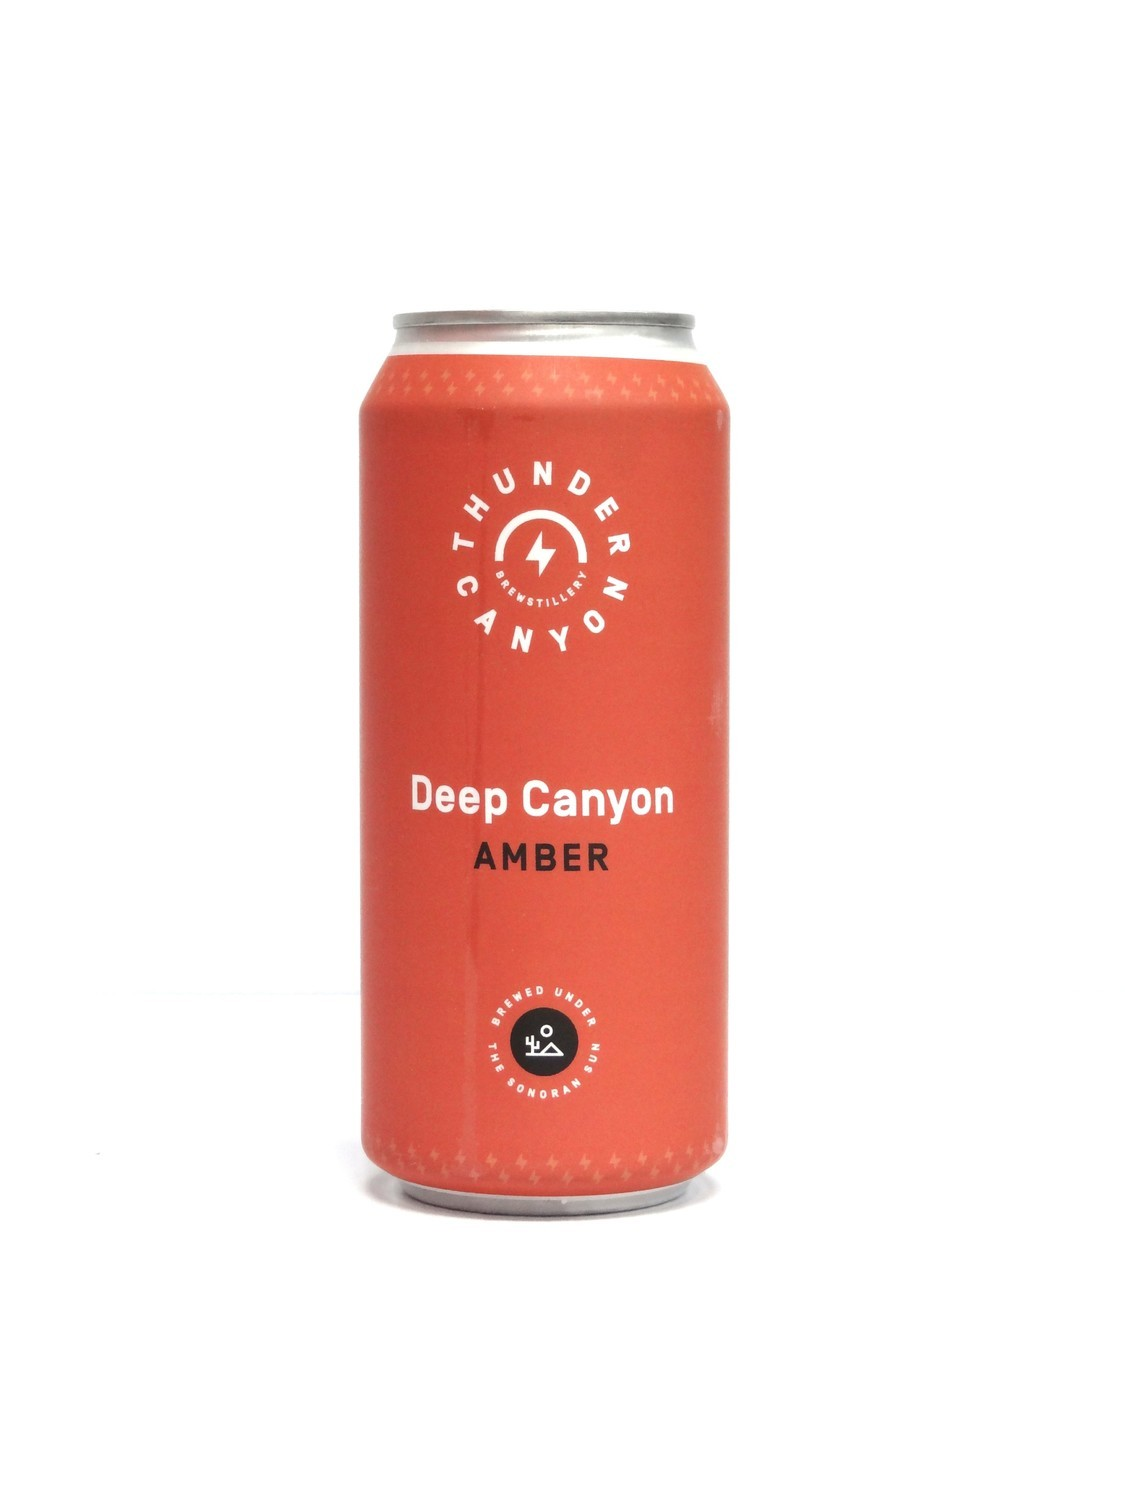 Deep Canyon Amber By Thunder Canyon Brew from Tucson, AZ 16oz Single Can (F2-6)